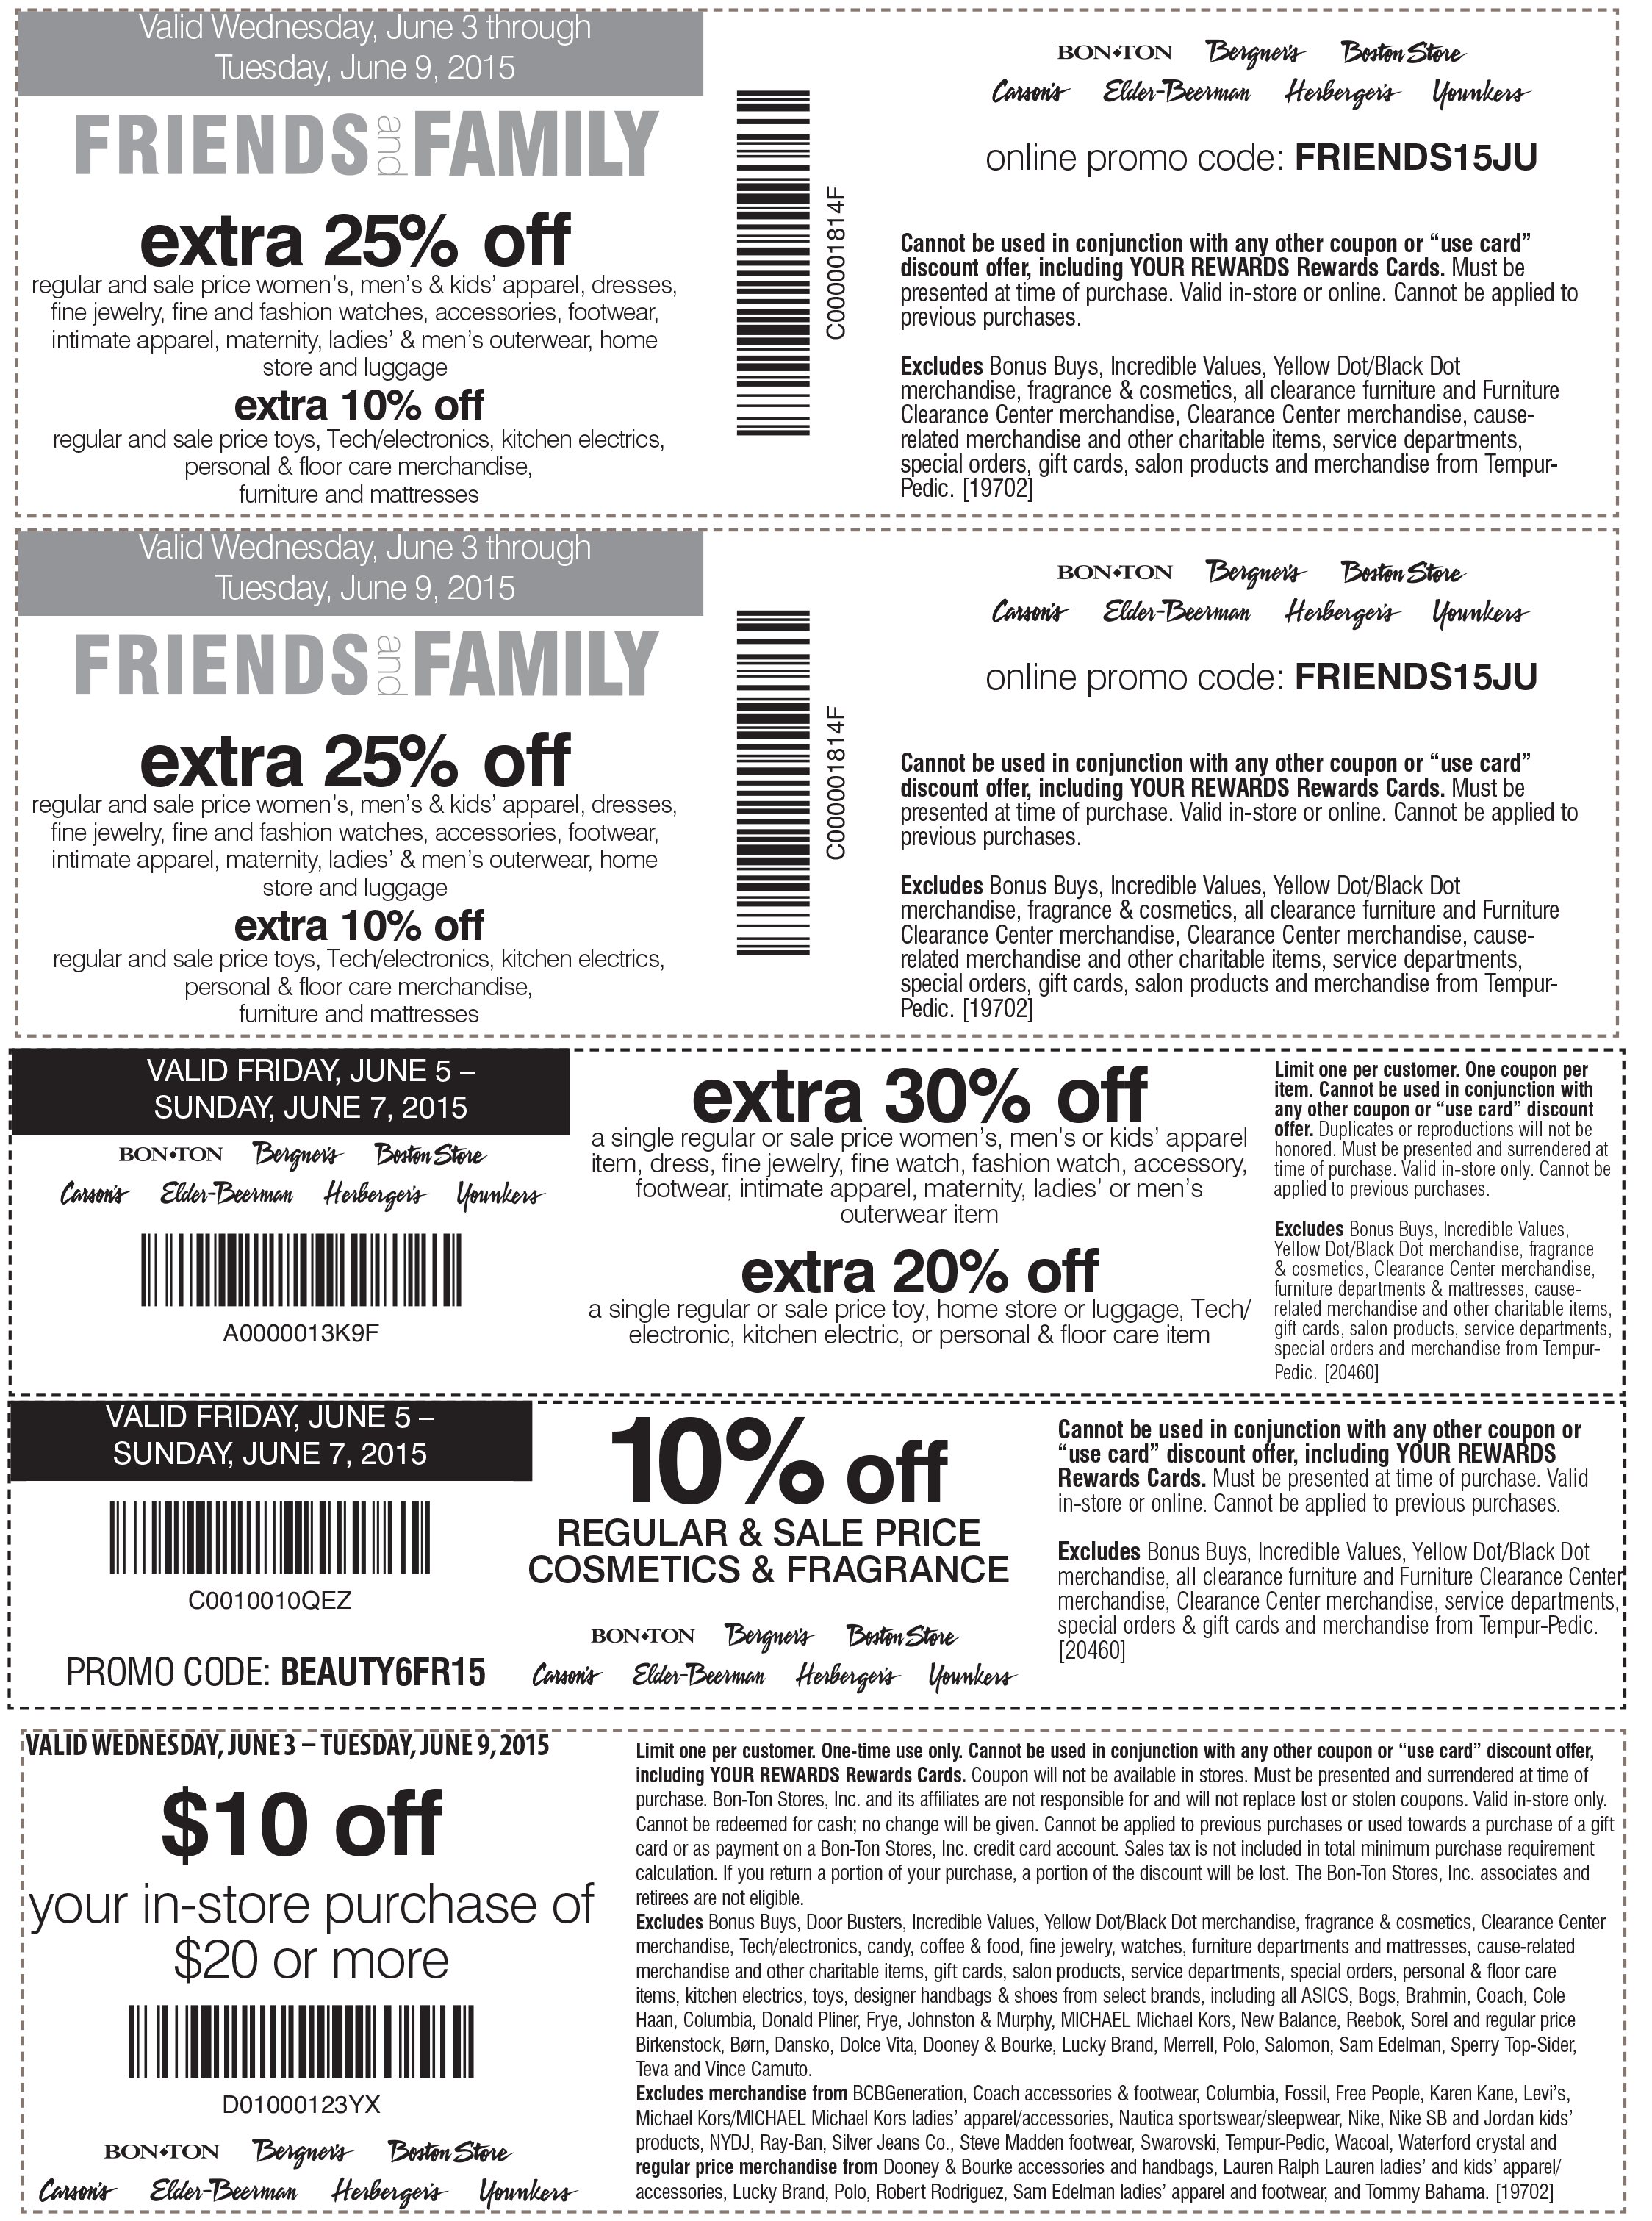 Carsons Coupon February 2018 Extra 30% off a single apparel item today at Carsons, Bon Ton, Bergners, Boston Store, Elder-Beerman, Herbergers & Younkers